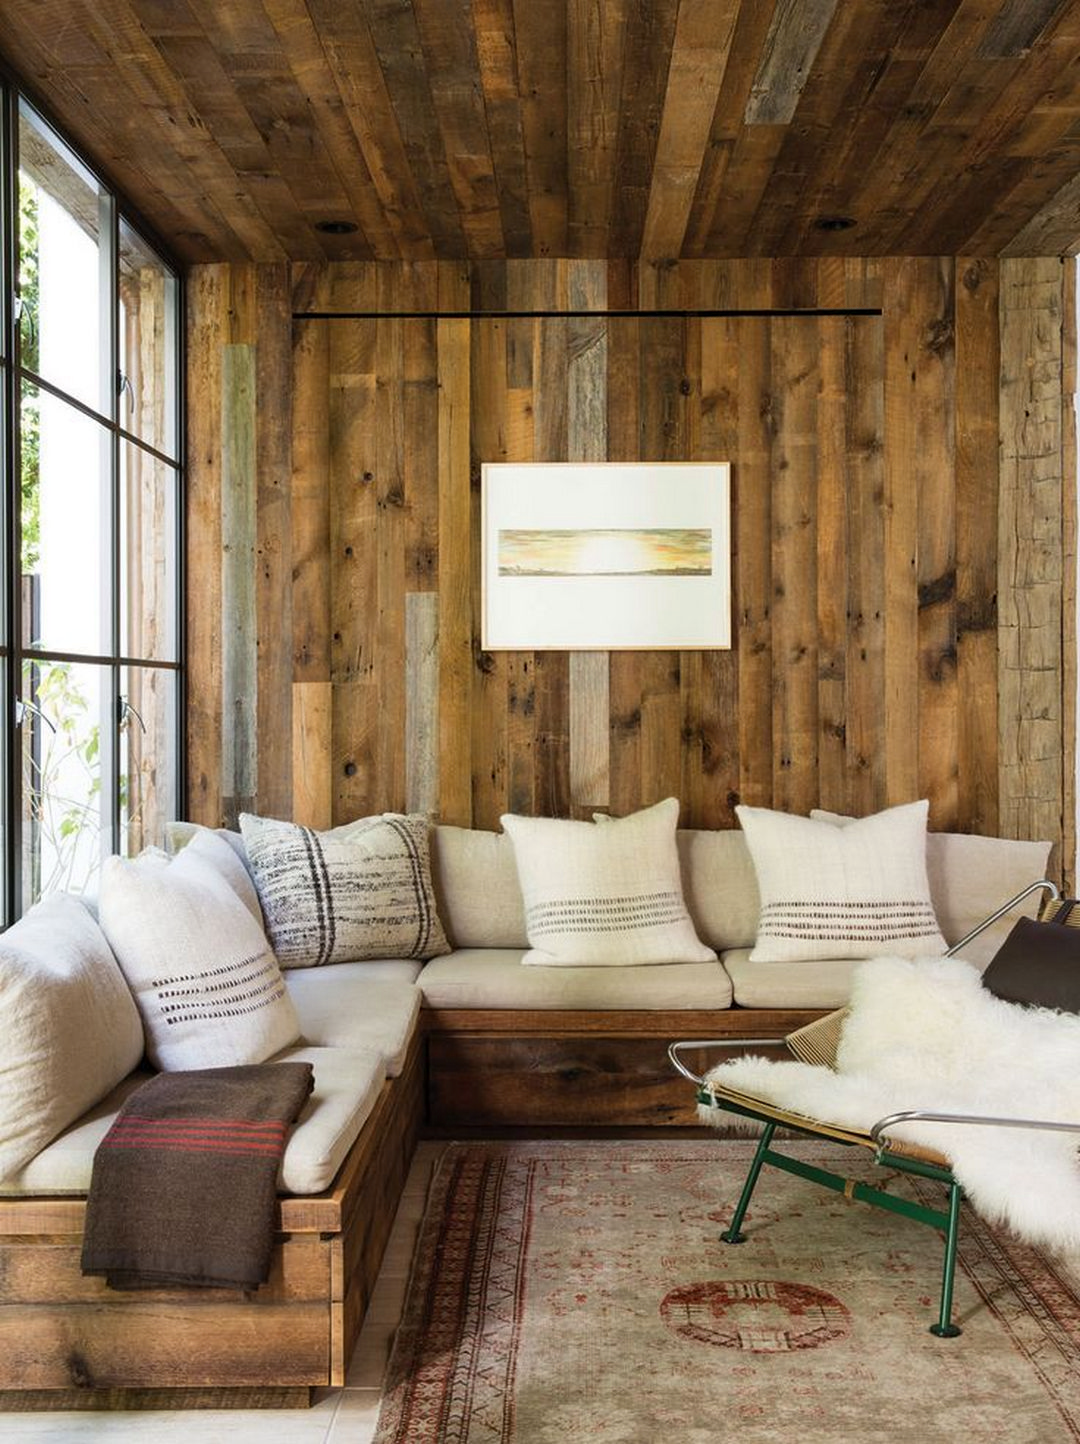 49 Gorgeous Rustic Cabin Interior Ideas | Gorgeous ...